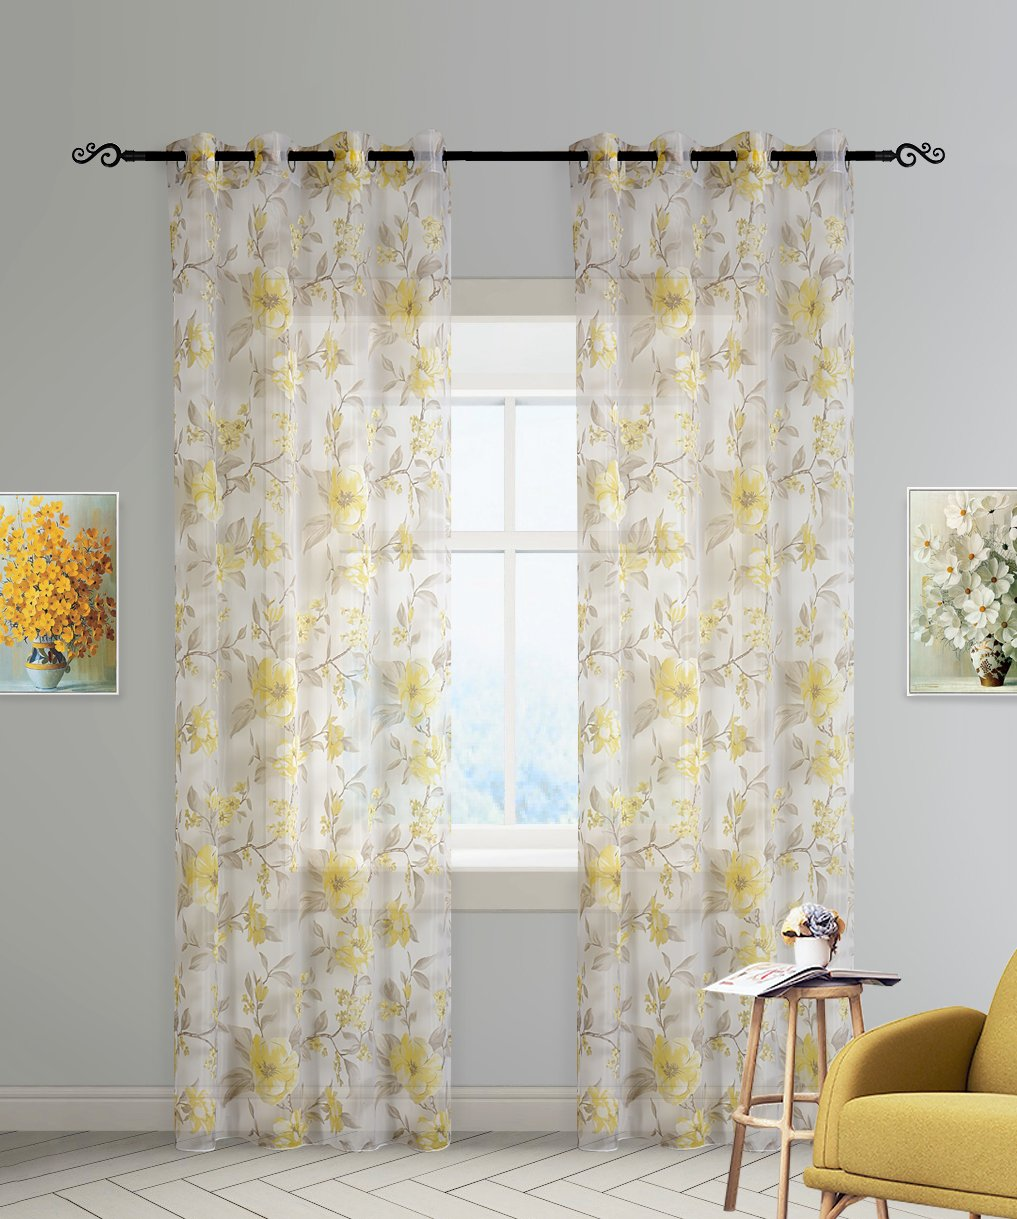 DEZENE Floral Tulle Curtains for Girls Bedroom Window Treatments Drapes Panel Sheer Curtain Yellow flowers